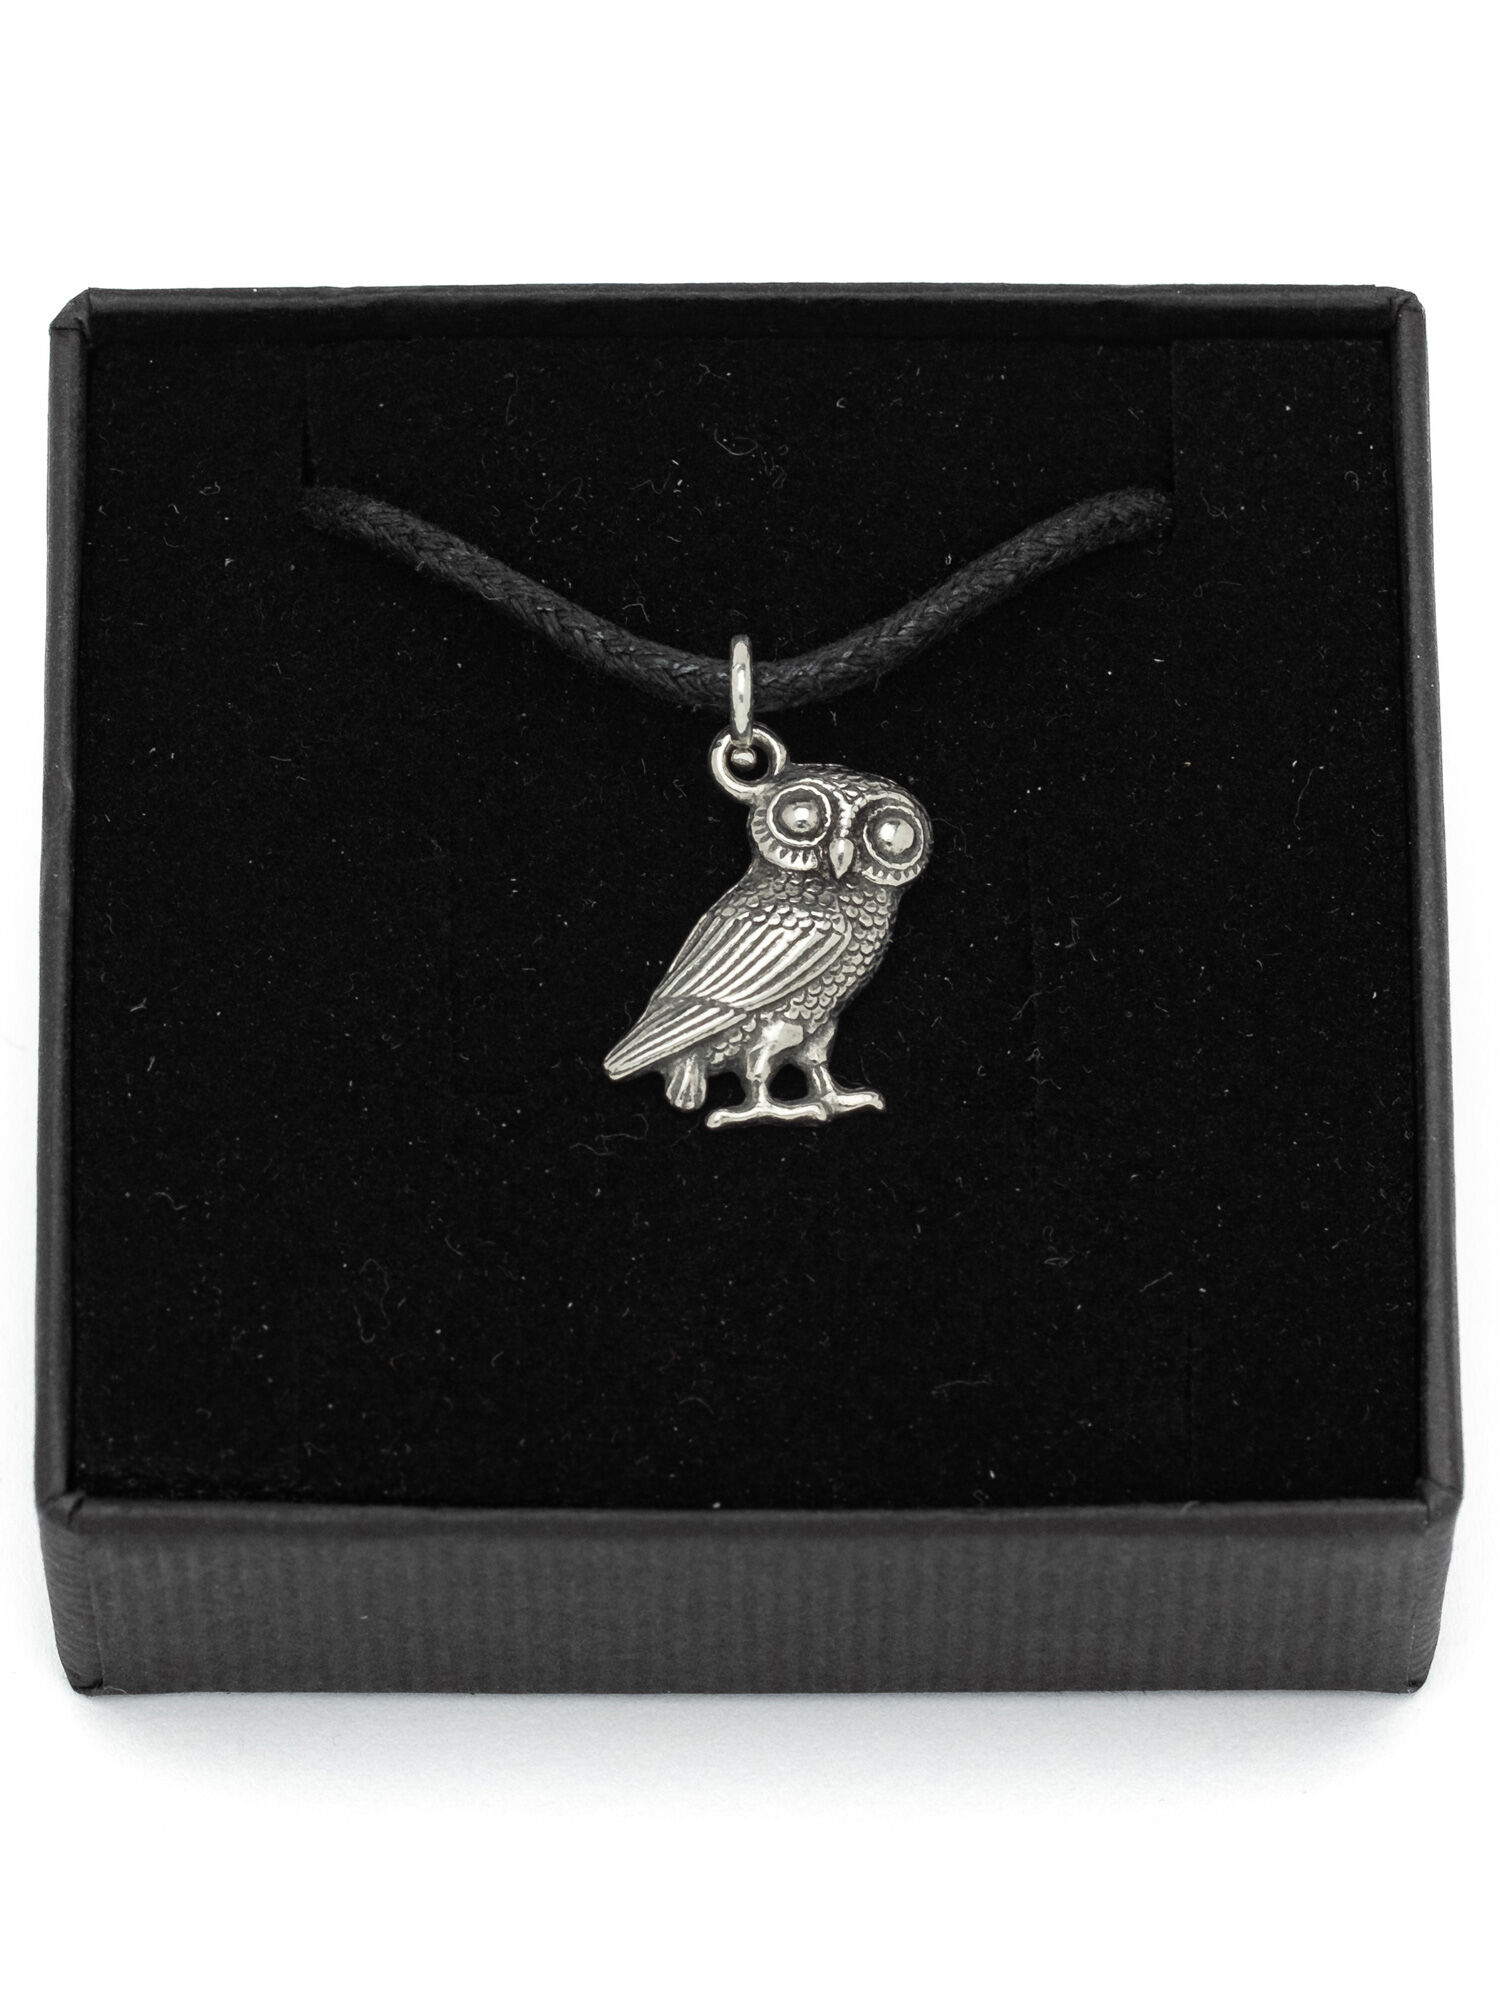 lucky tigers of s lg eye picture necklace p pendant stones owl strands ebay brand